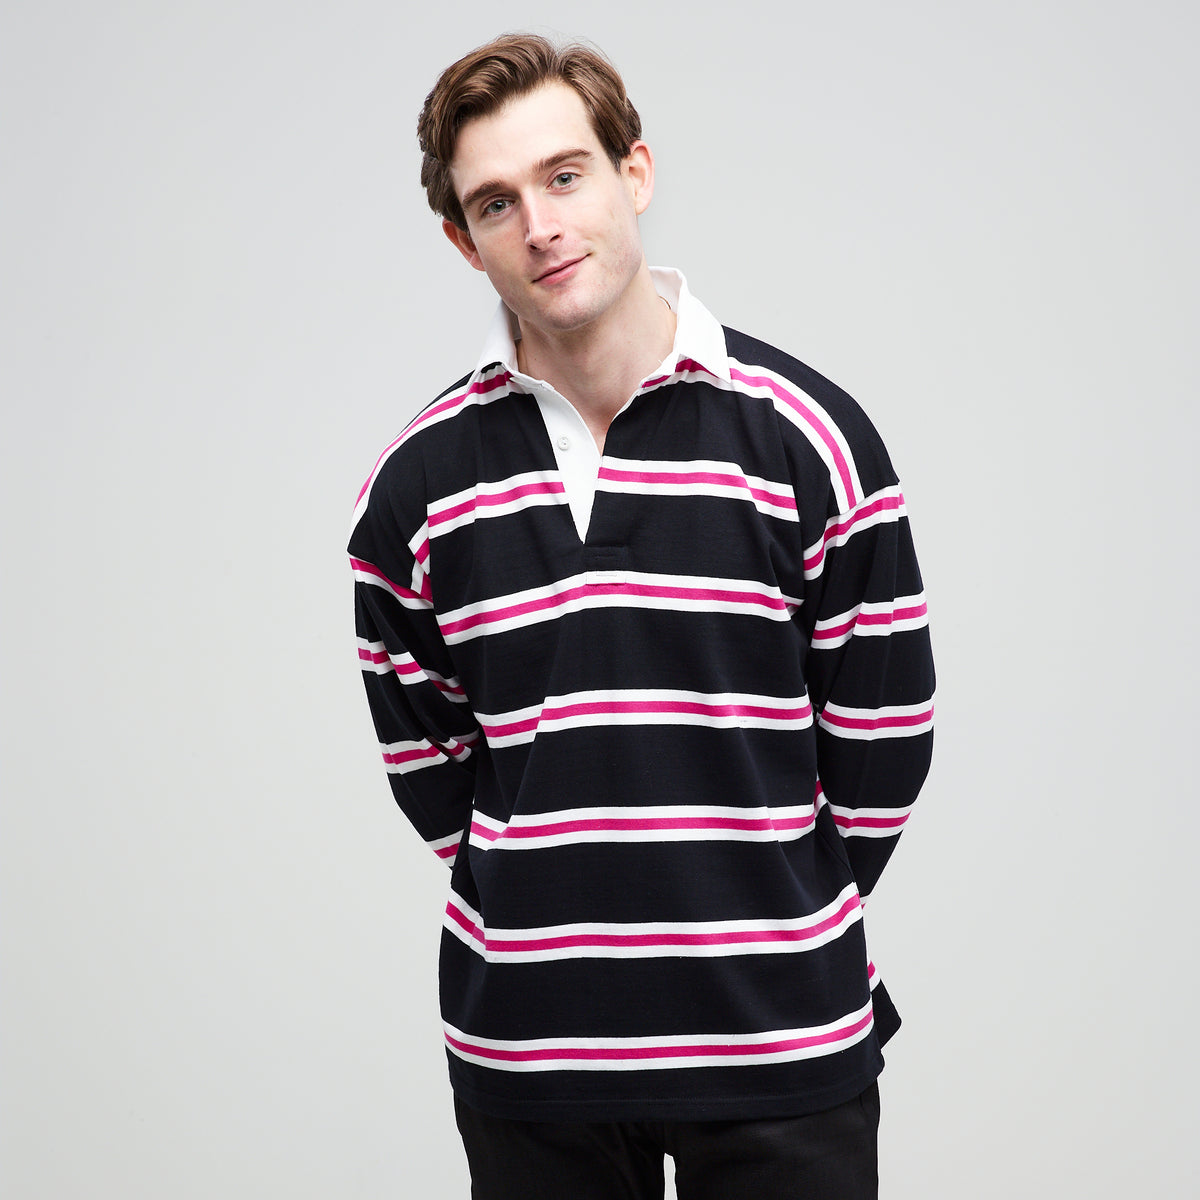 Men's Rugby Shirt Black White Pink - Community Clothing